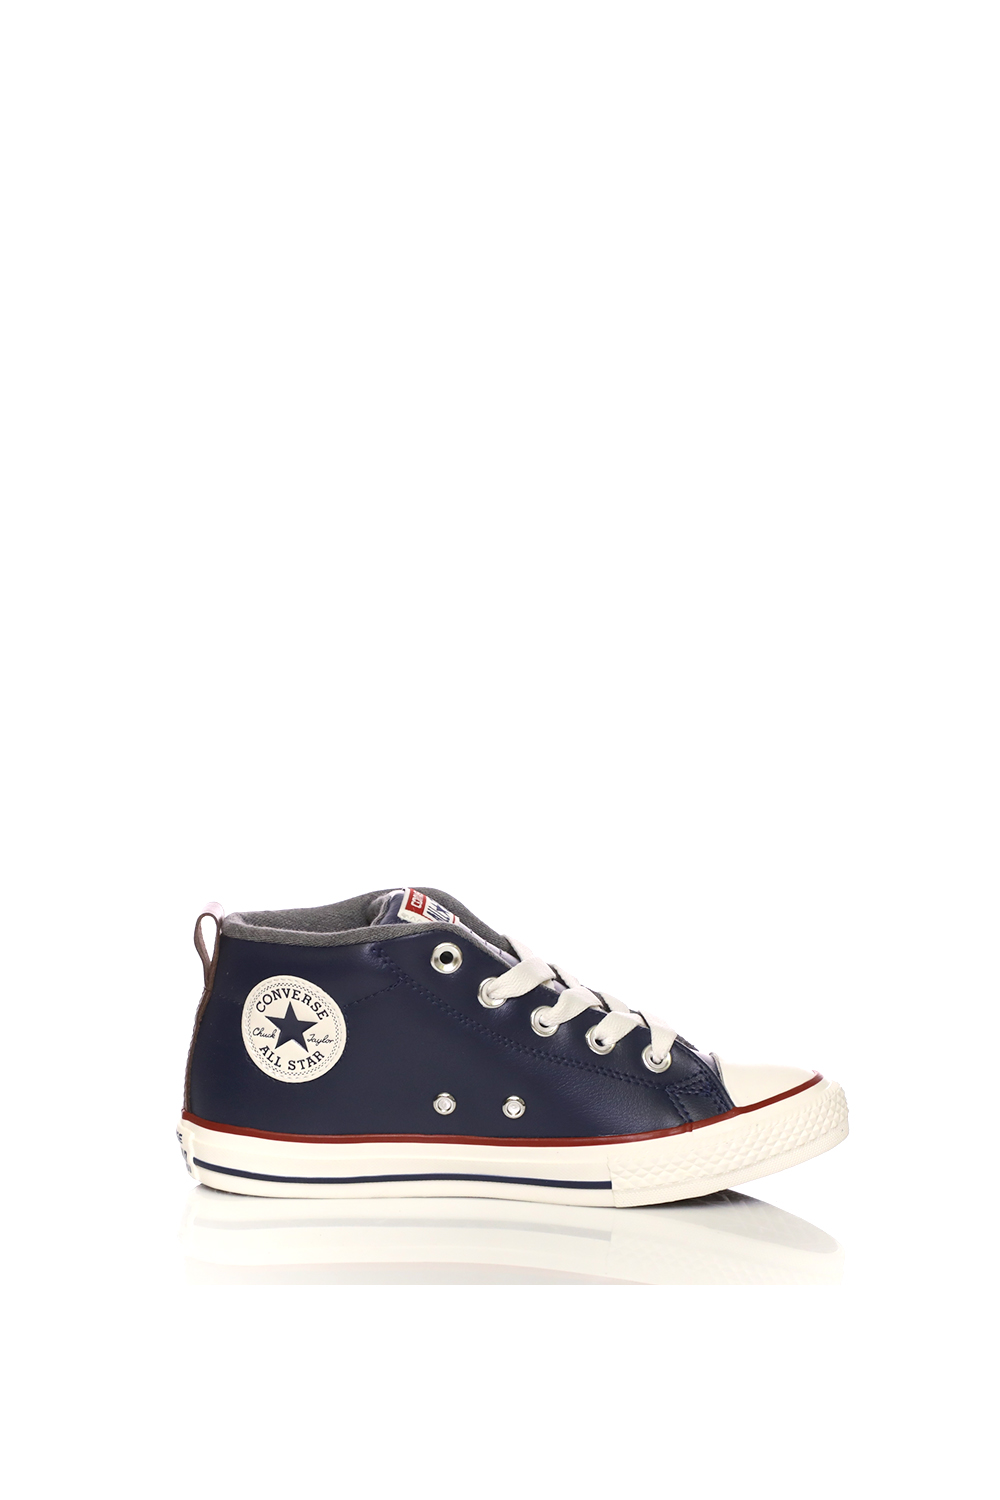 CONVERSE – Παιδικά παπούτσια CONVERSE Chuck Taylor All Star Street μπλε